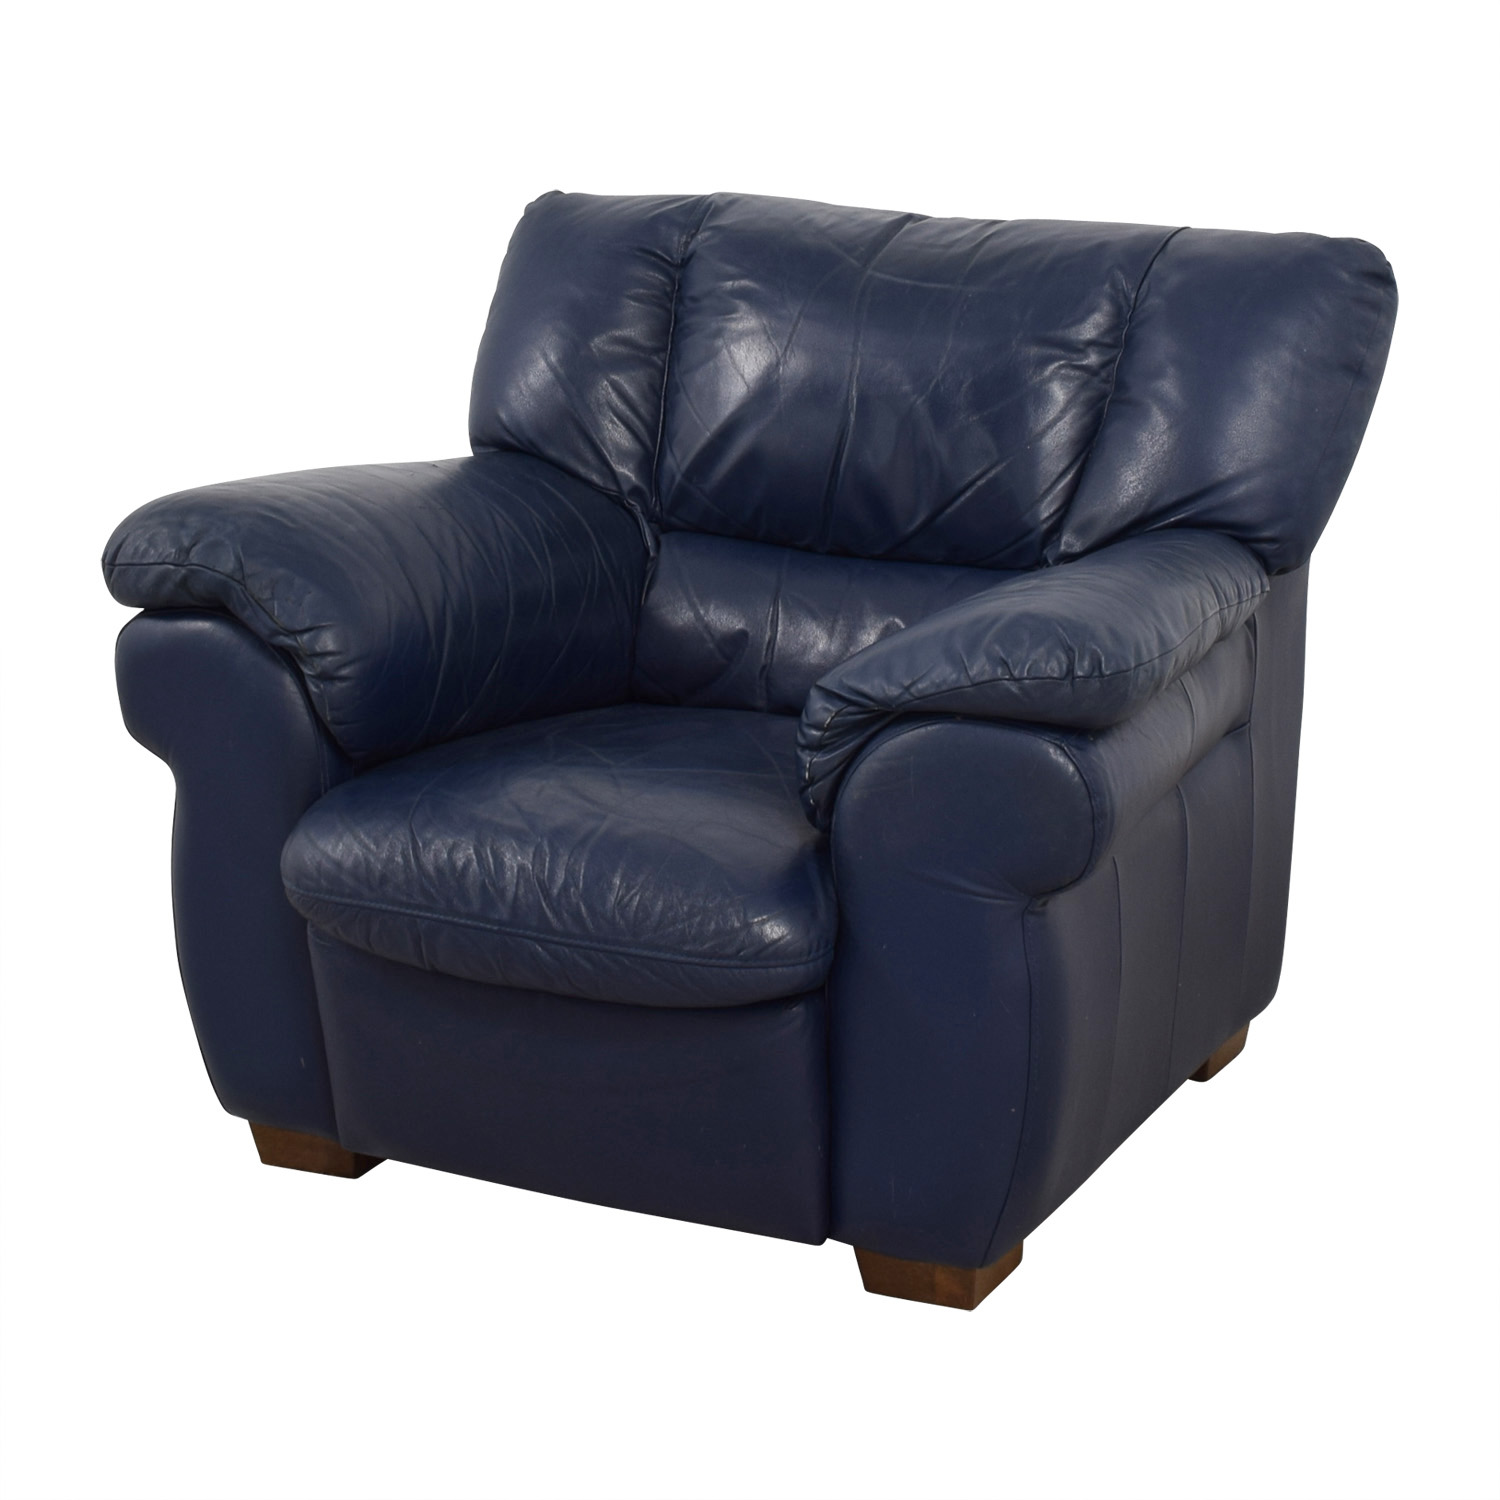 Navy blue leather chair best home design 2018 for Blue leather sofa